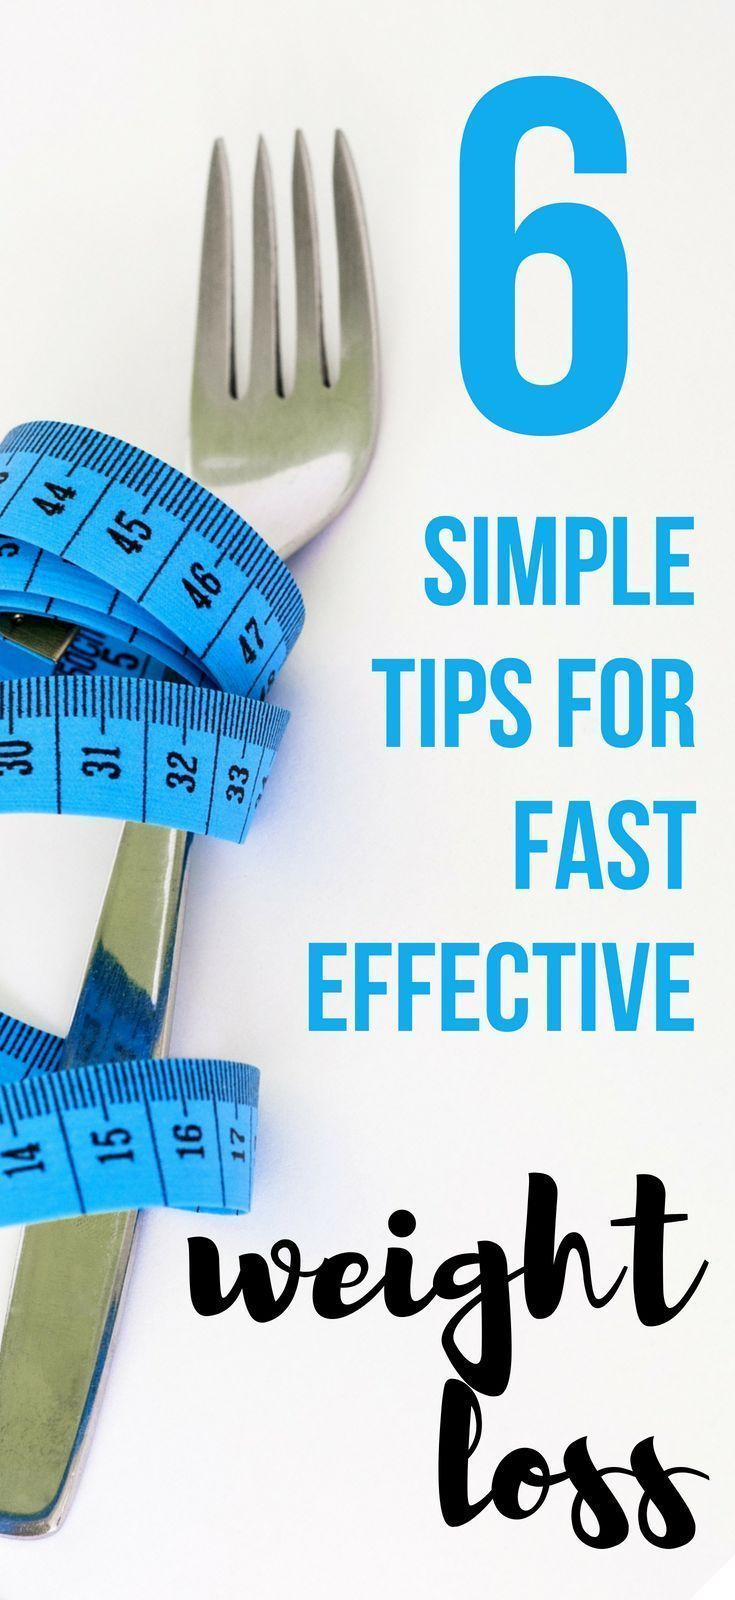 Easy and quick weight loss tips #weightlosstips :) | how ro lose weight fast#weightlossjourney #fitness #healthy #diet